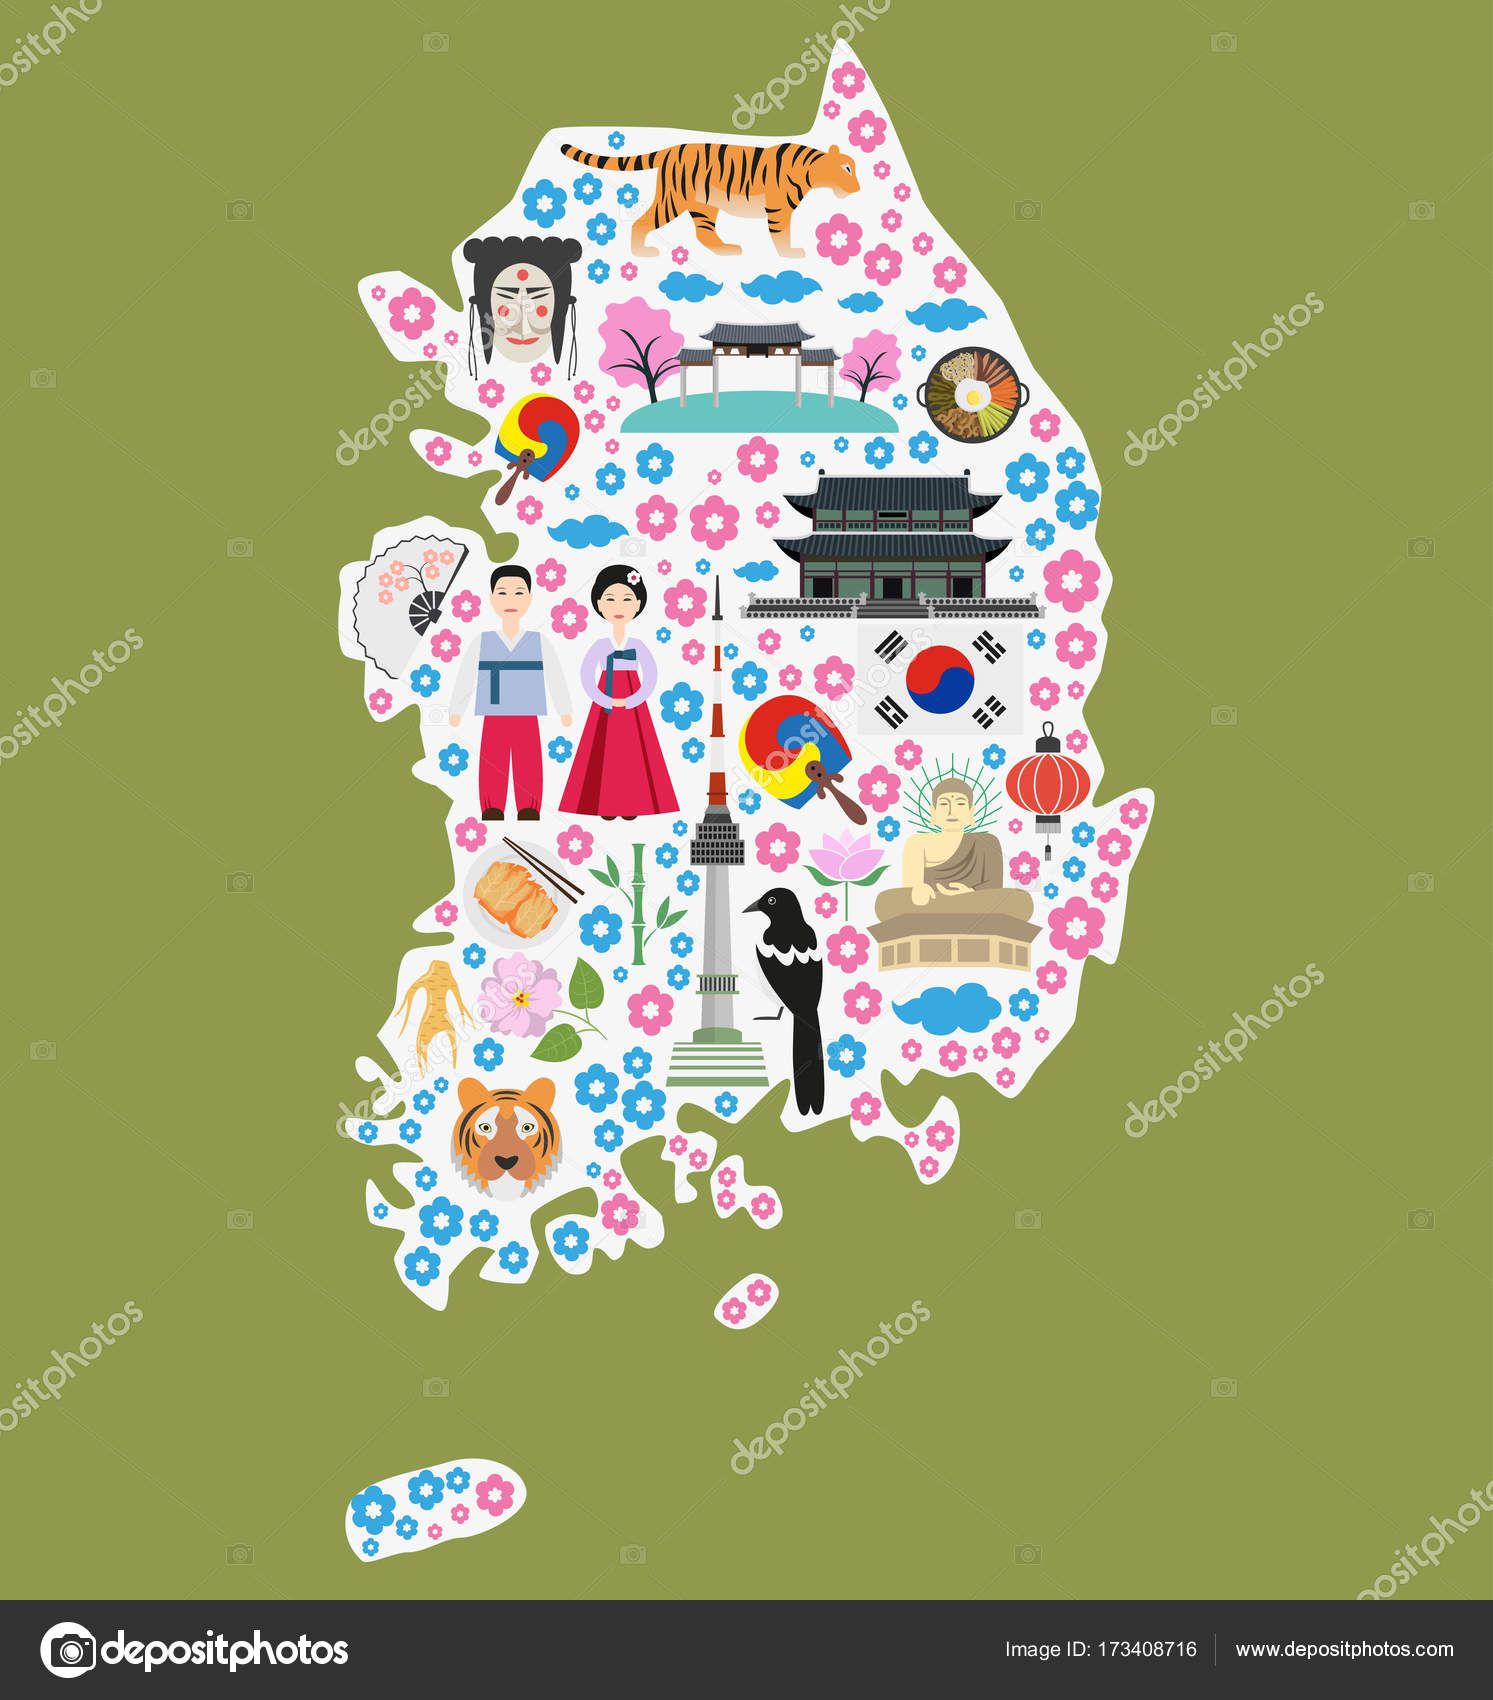 Welcome to south korea stock vector oldmillionkaail welcome to south korea colorful poster with symbols of south korea silhouette of map of south korea with flat icons vector illustration biocorpaavc Gallery